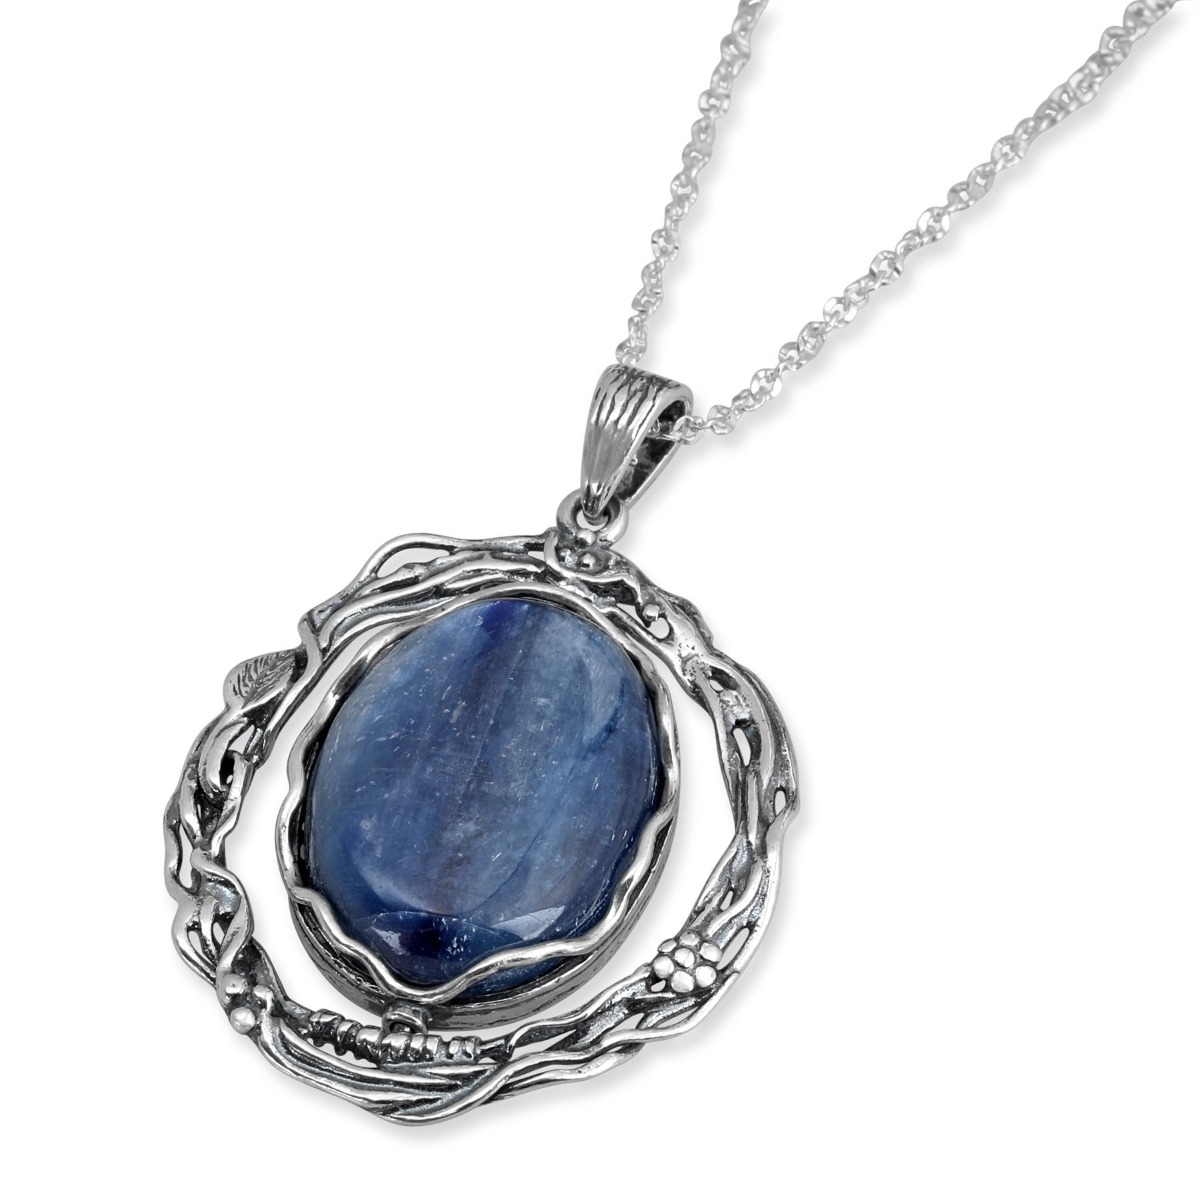 925 Sterling Silver Peace Hamsa Necklace with Kyanite Stone. Jewish Jewelry | Judaica WebStore